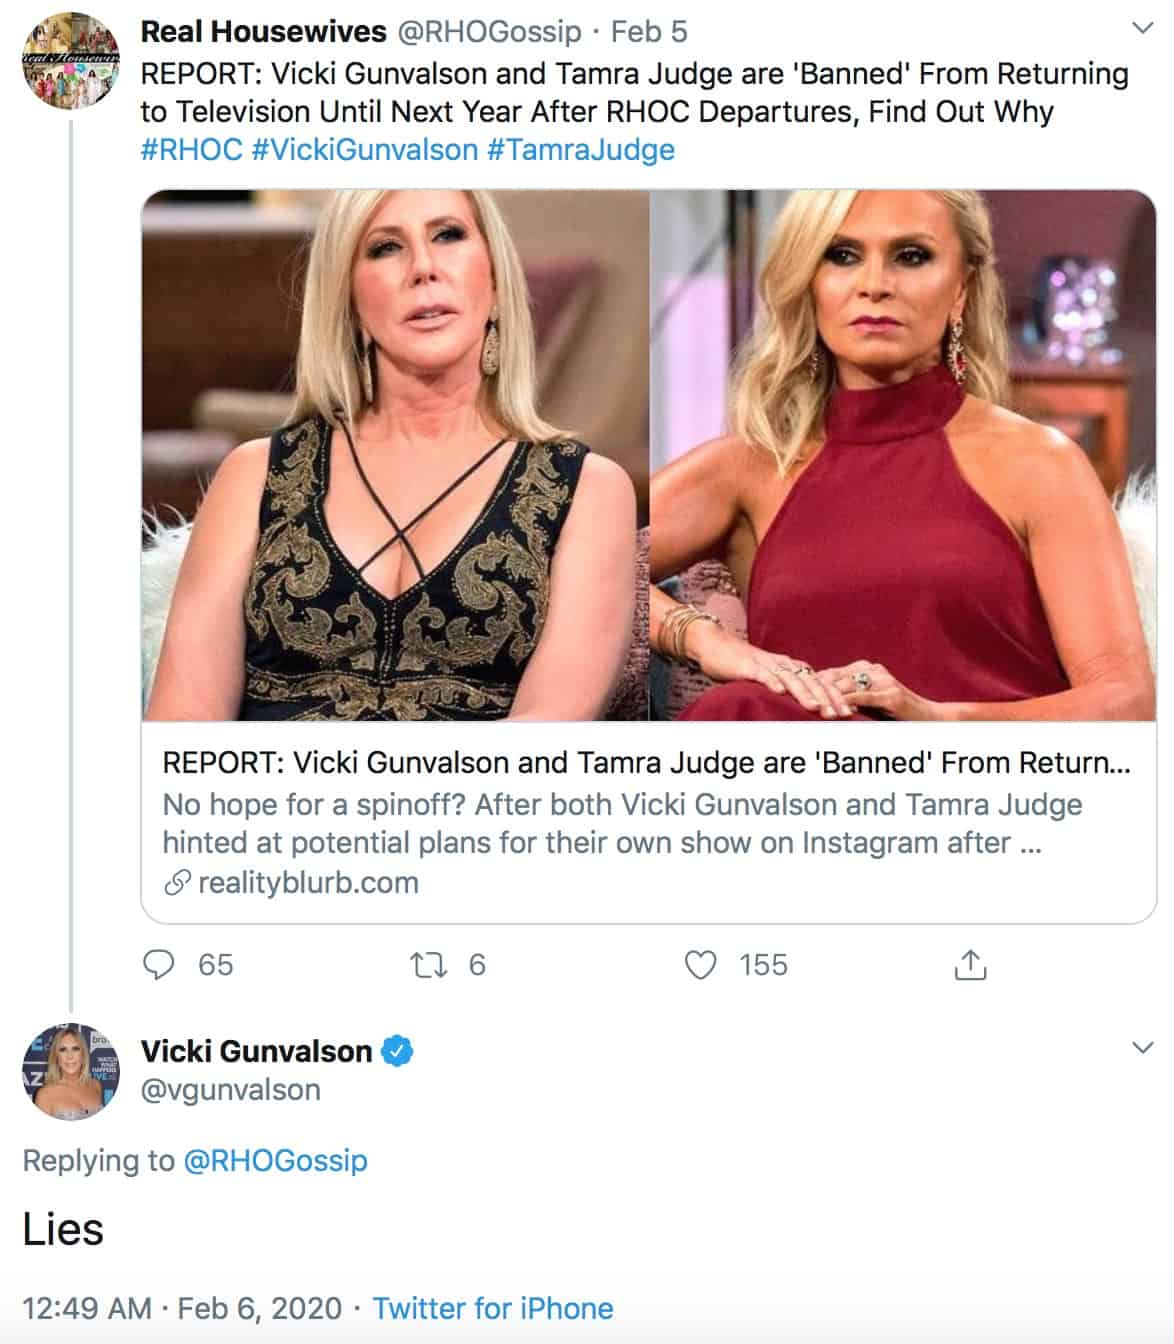 Vicki Gunvalson is Not Banned From TV After RHOC Exit